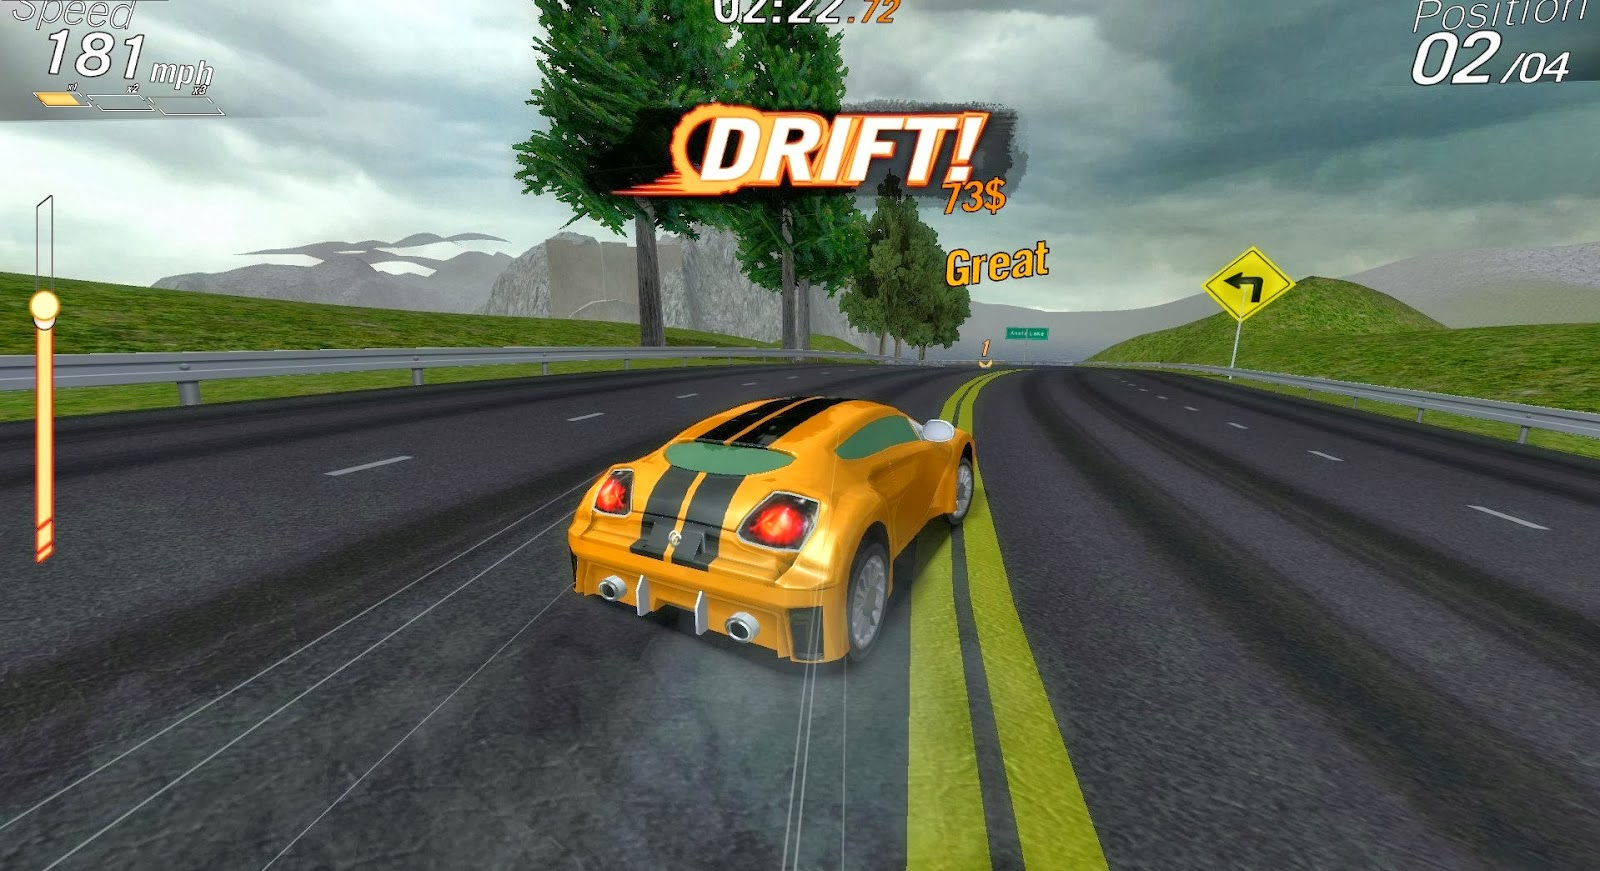 Download Free Games Compressed For Pc Crazy Cars Hit The